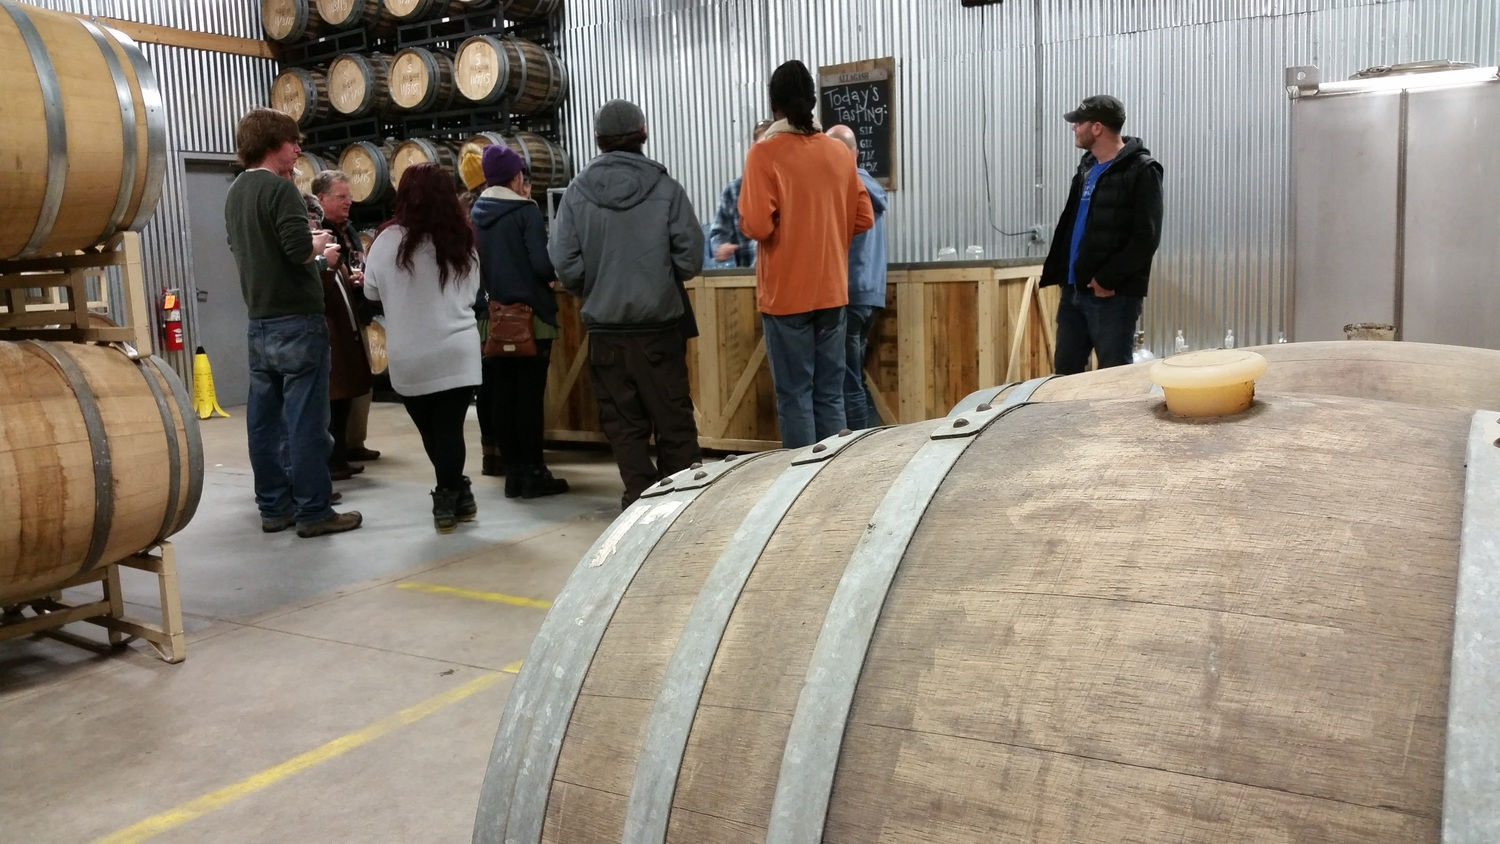 Everyone had a chance to try the recently released Helena, an American Wild ale aged in oak wine barrels.